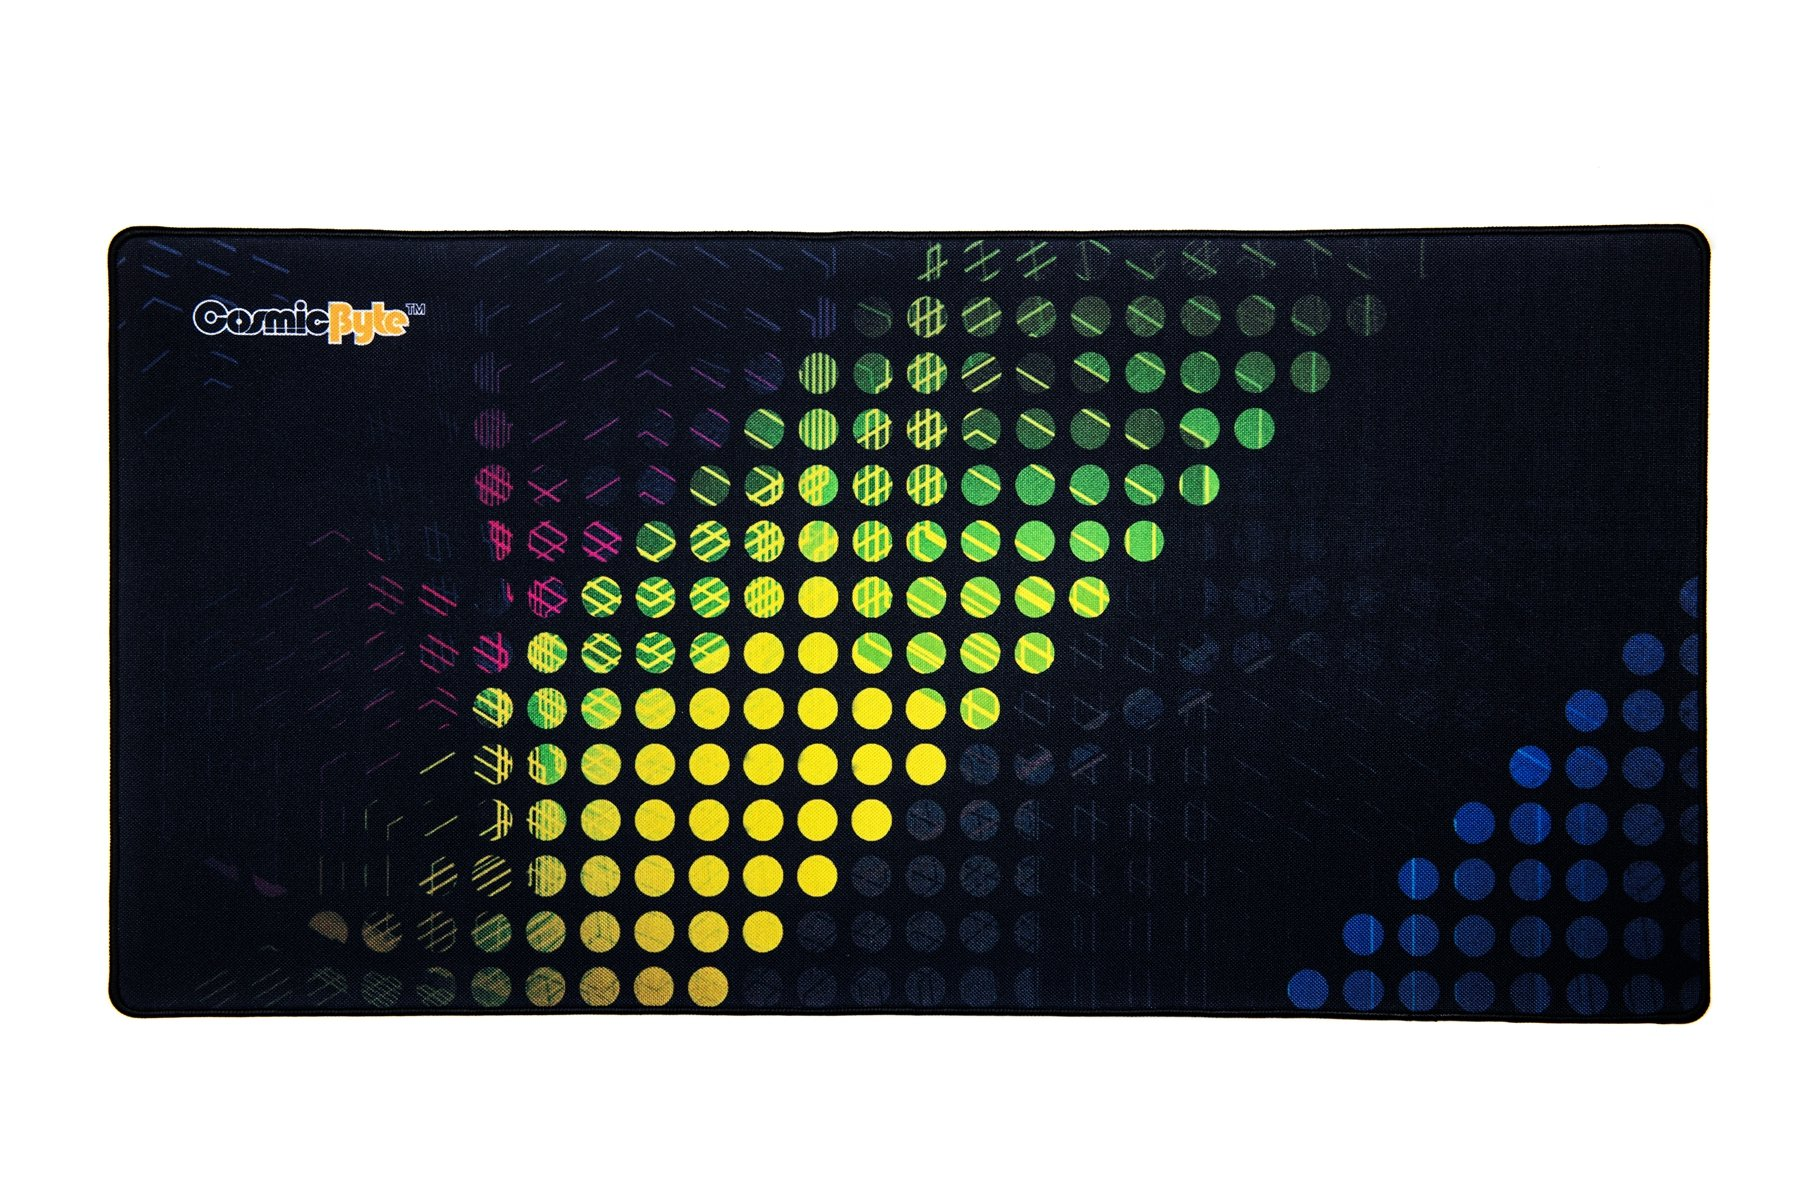 Amazon price history for Cosmic Byte HyperGiant Control Type Gaming Mousepad, 900mm x 450mm x 4mm